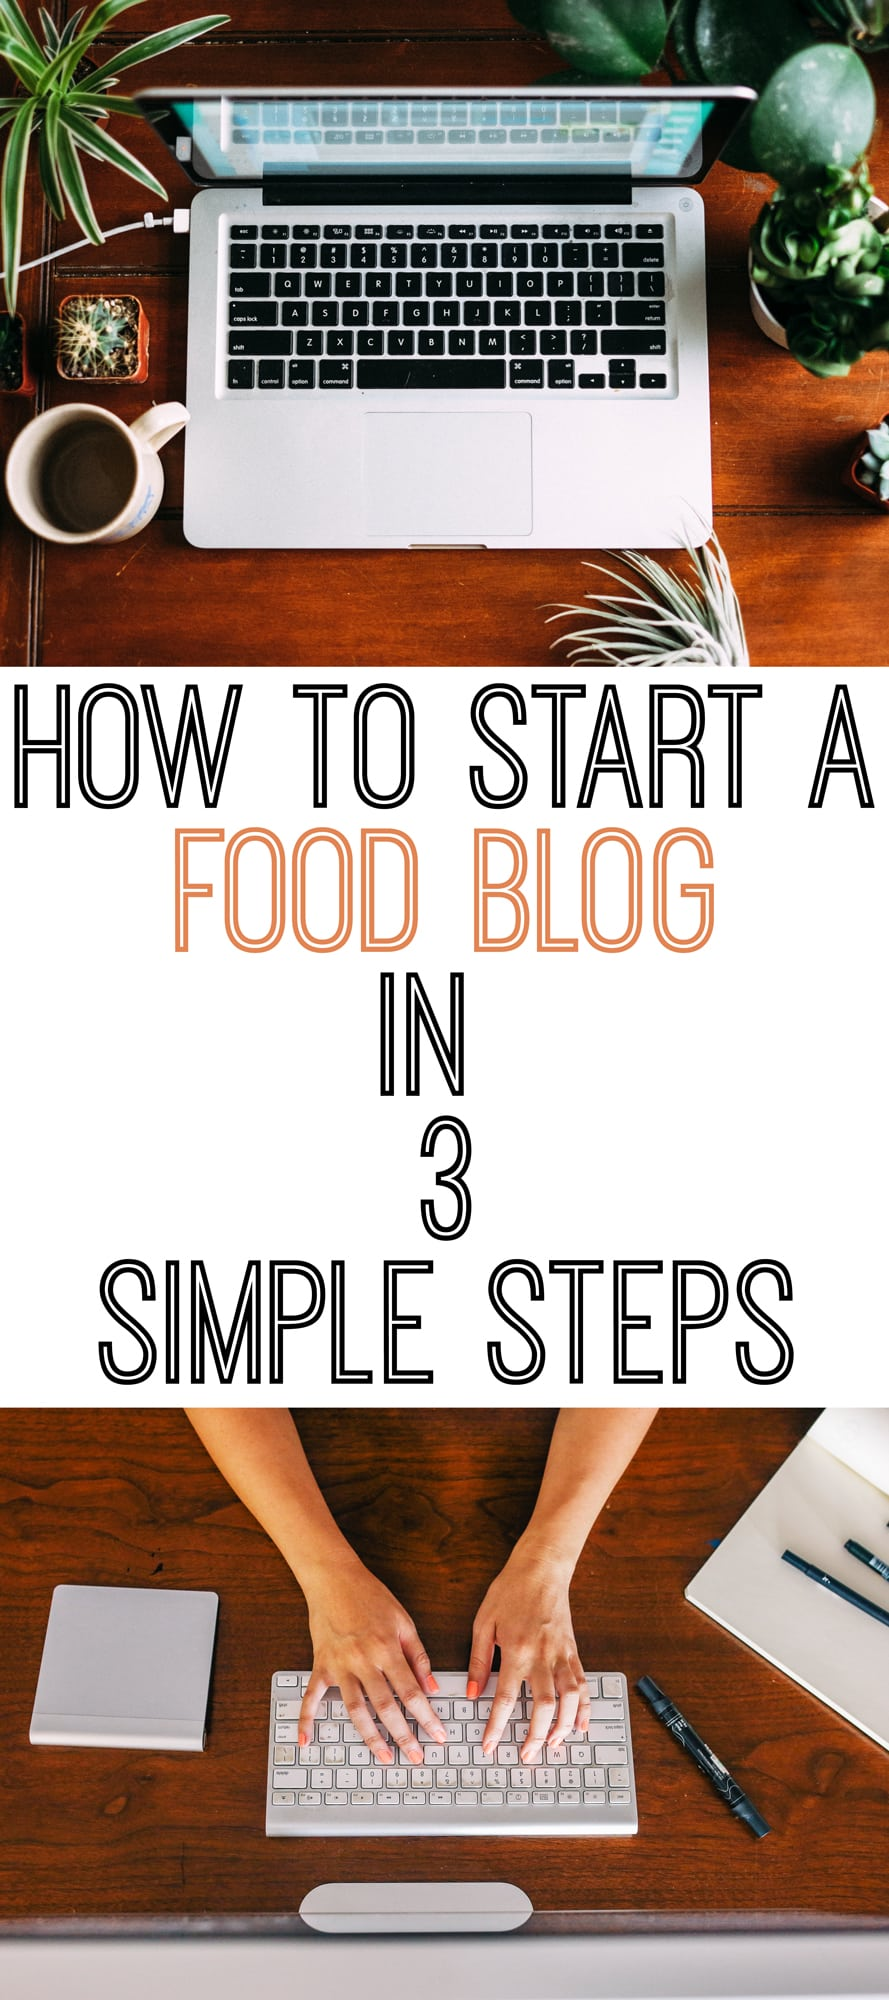 How to start a food blog in 3 simple steps